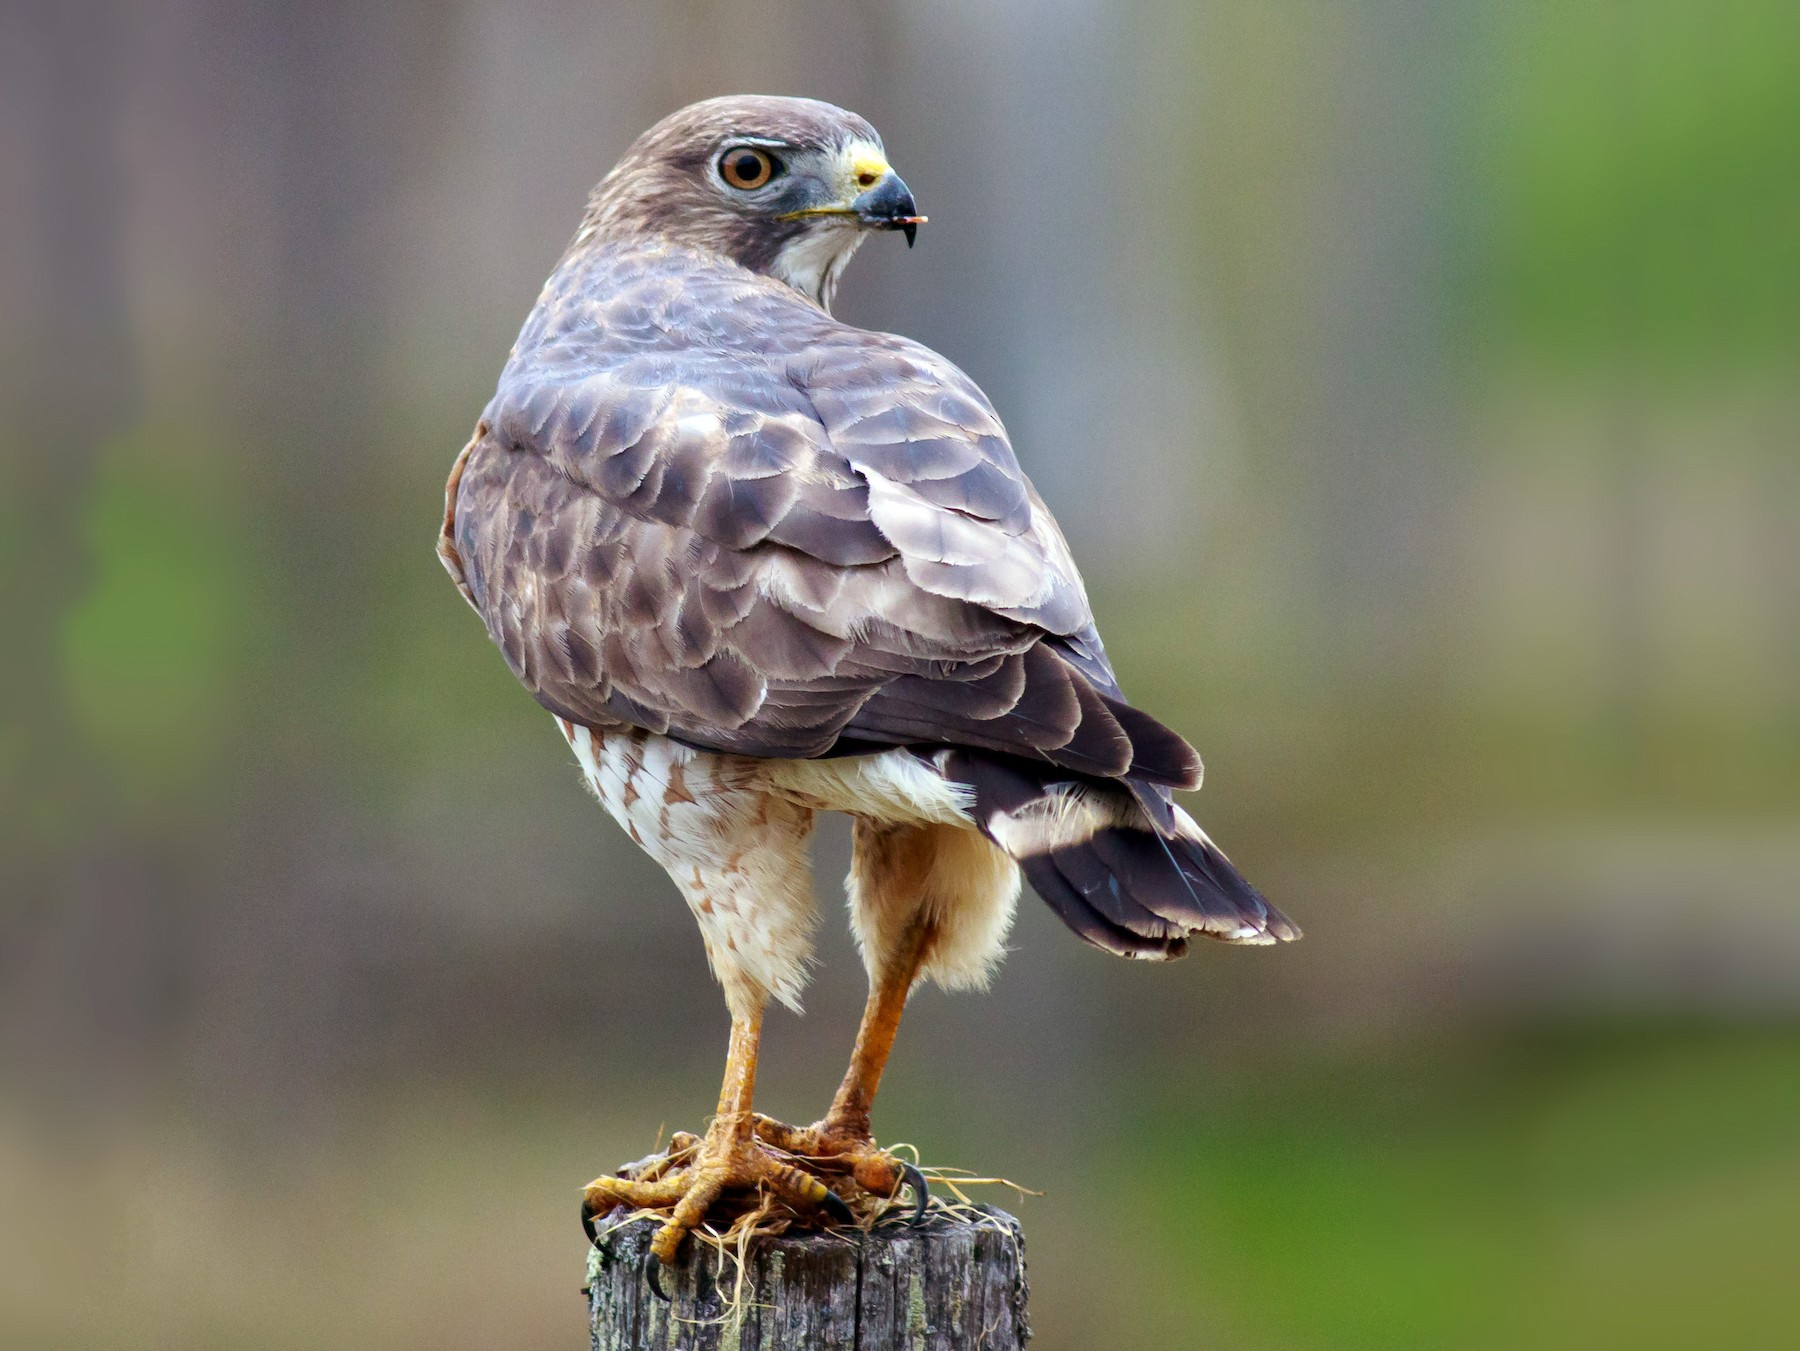 Broad-winged Hawk - Andrew Aldrich